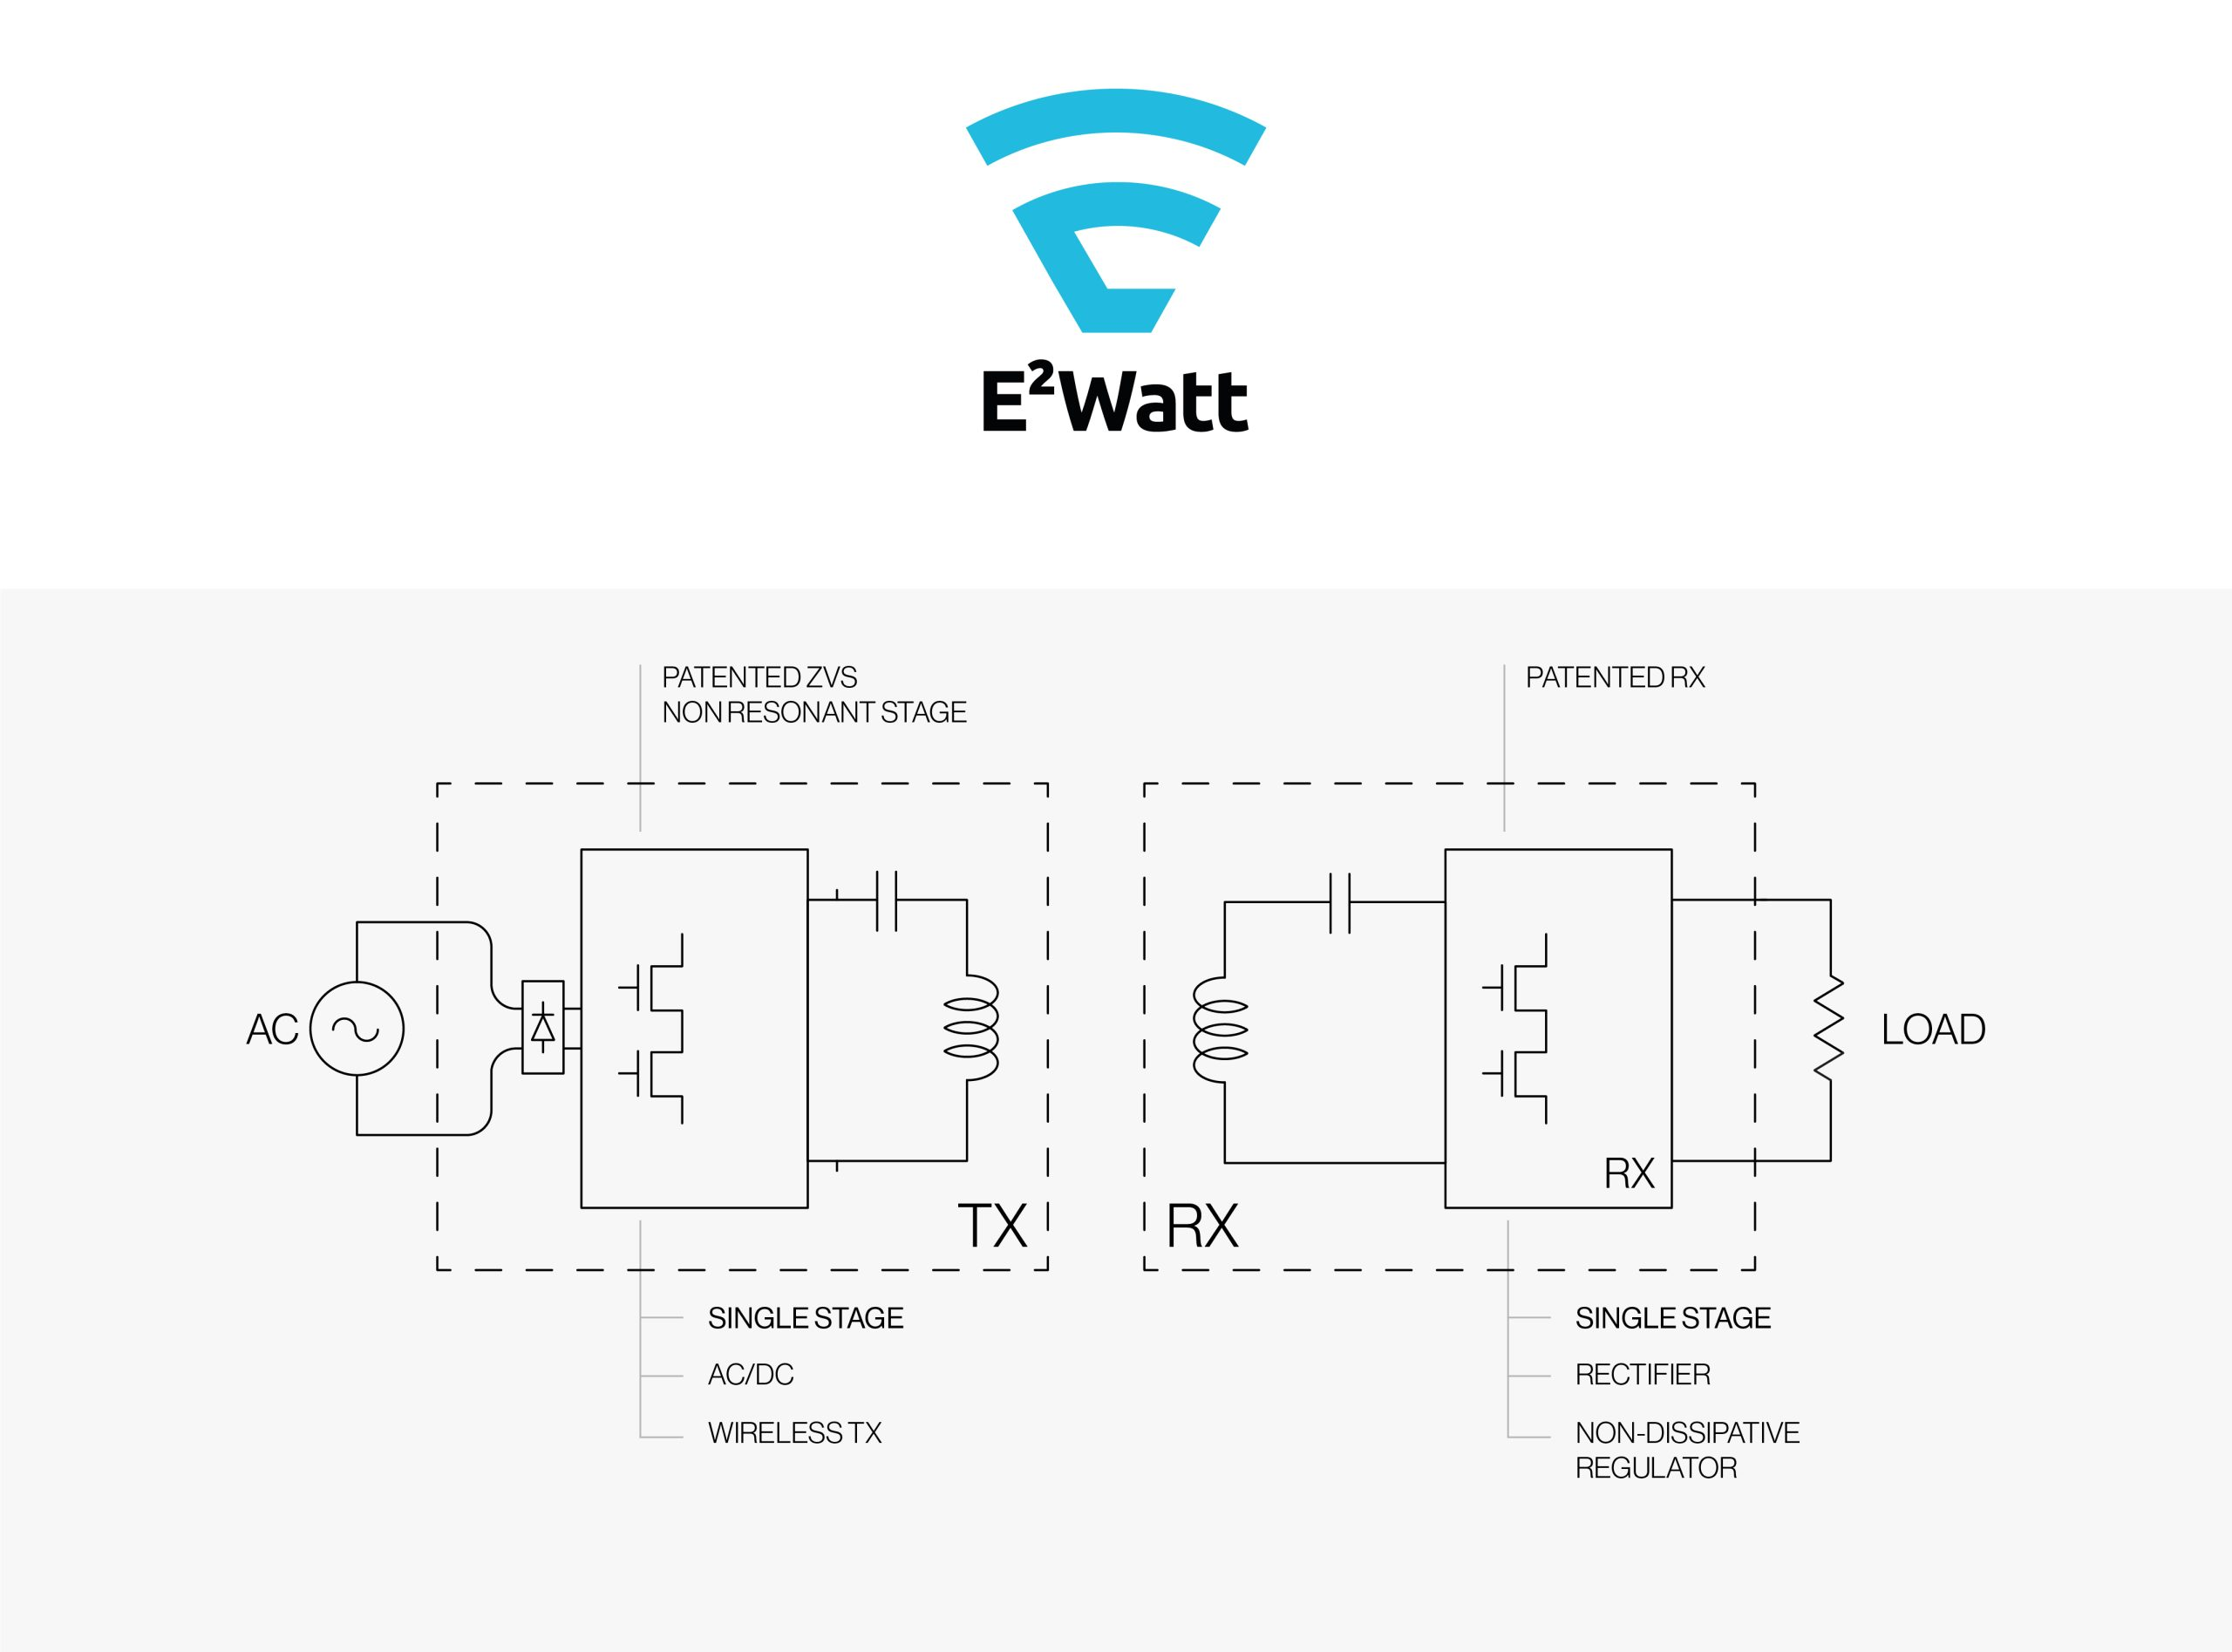 Eggtronic E2WATTⓇ Wireless Power Supply Technology Offers a Route to Wireless Charging in Higher Power Applications Including Home Appliances and Electric Vehicles